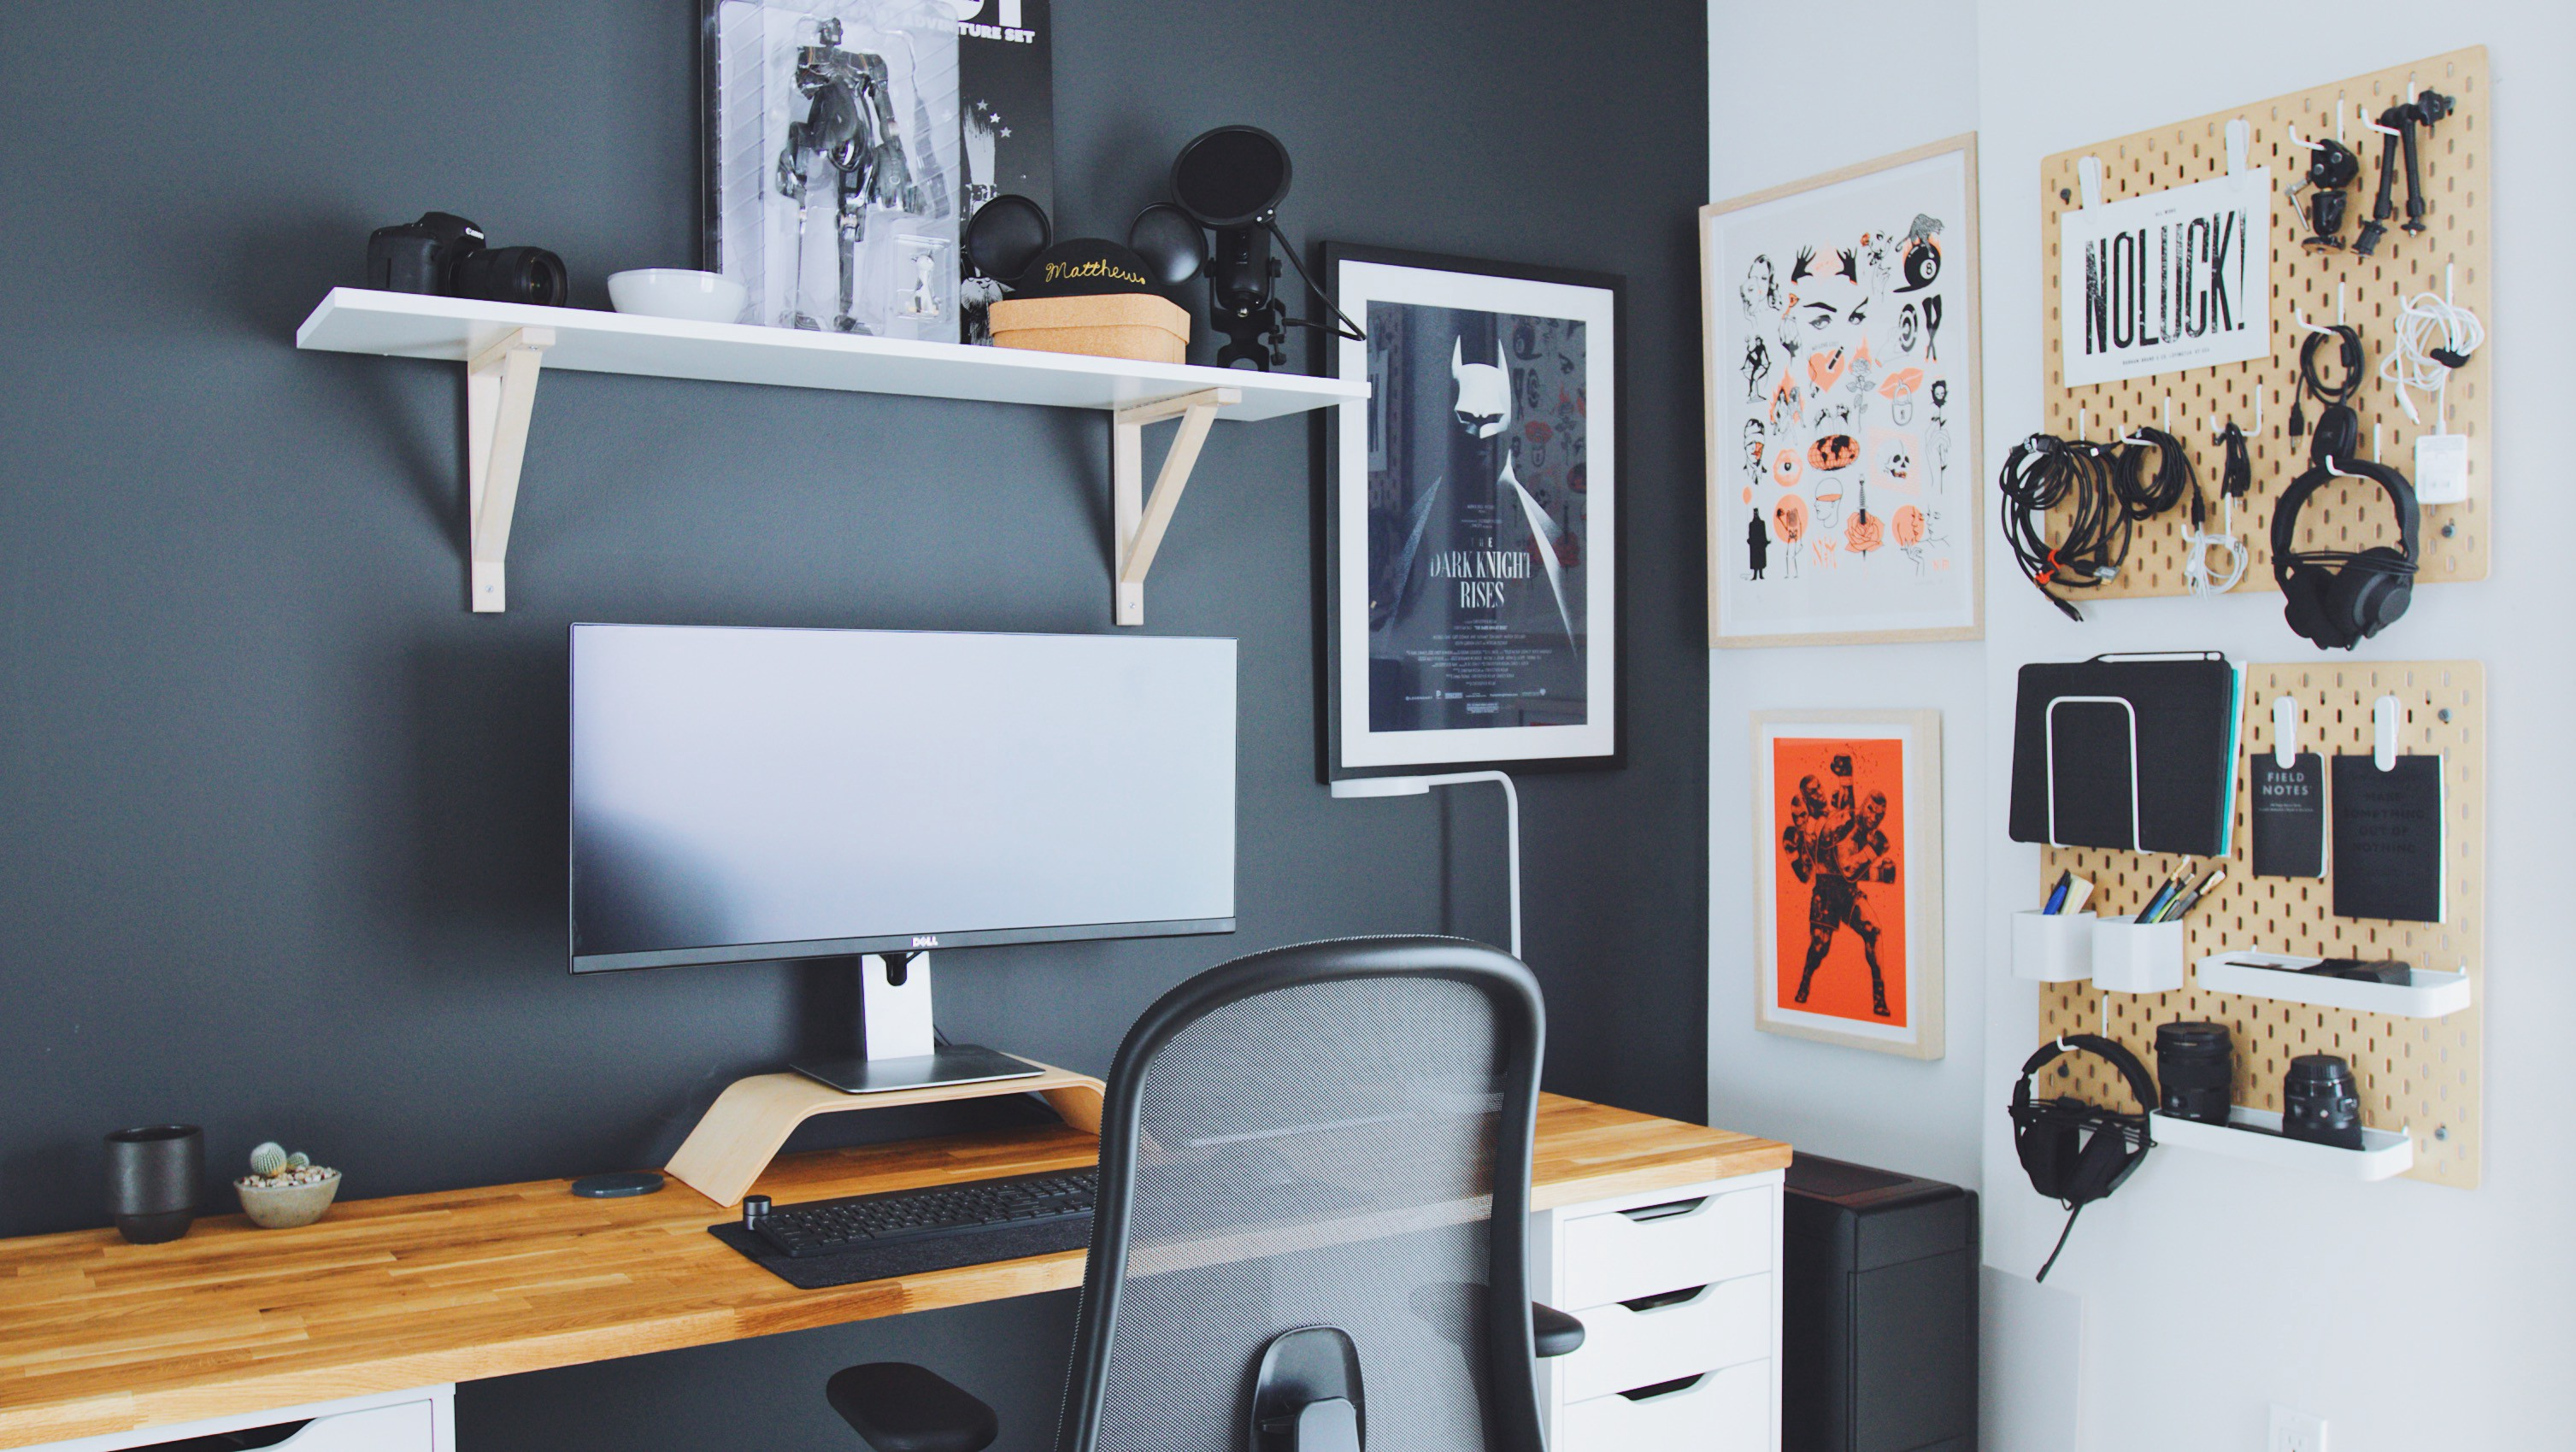 How to Make the Most of a Small Office